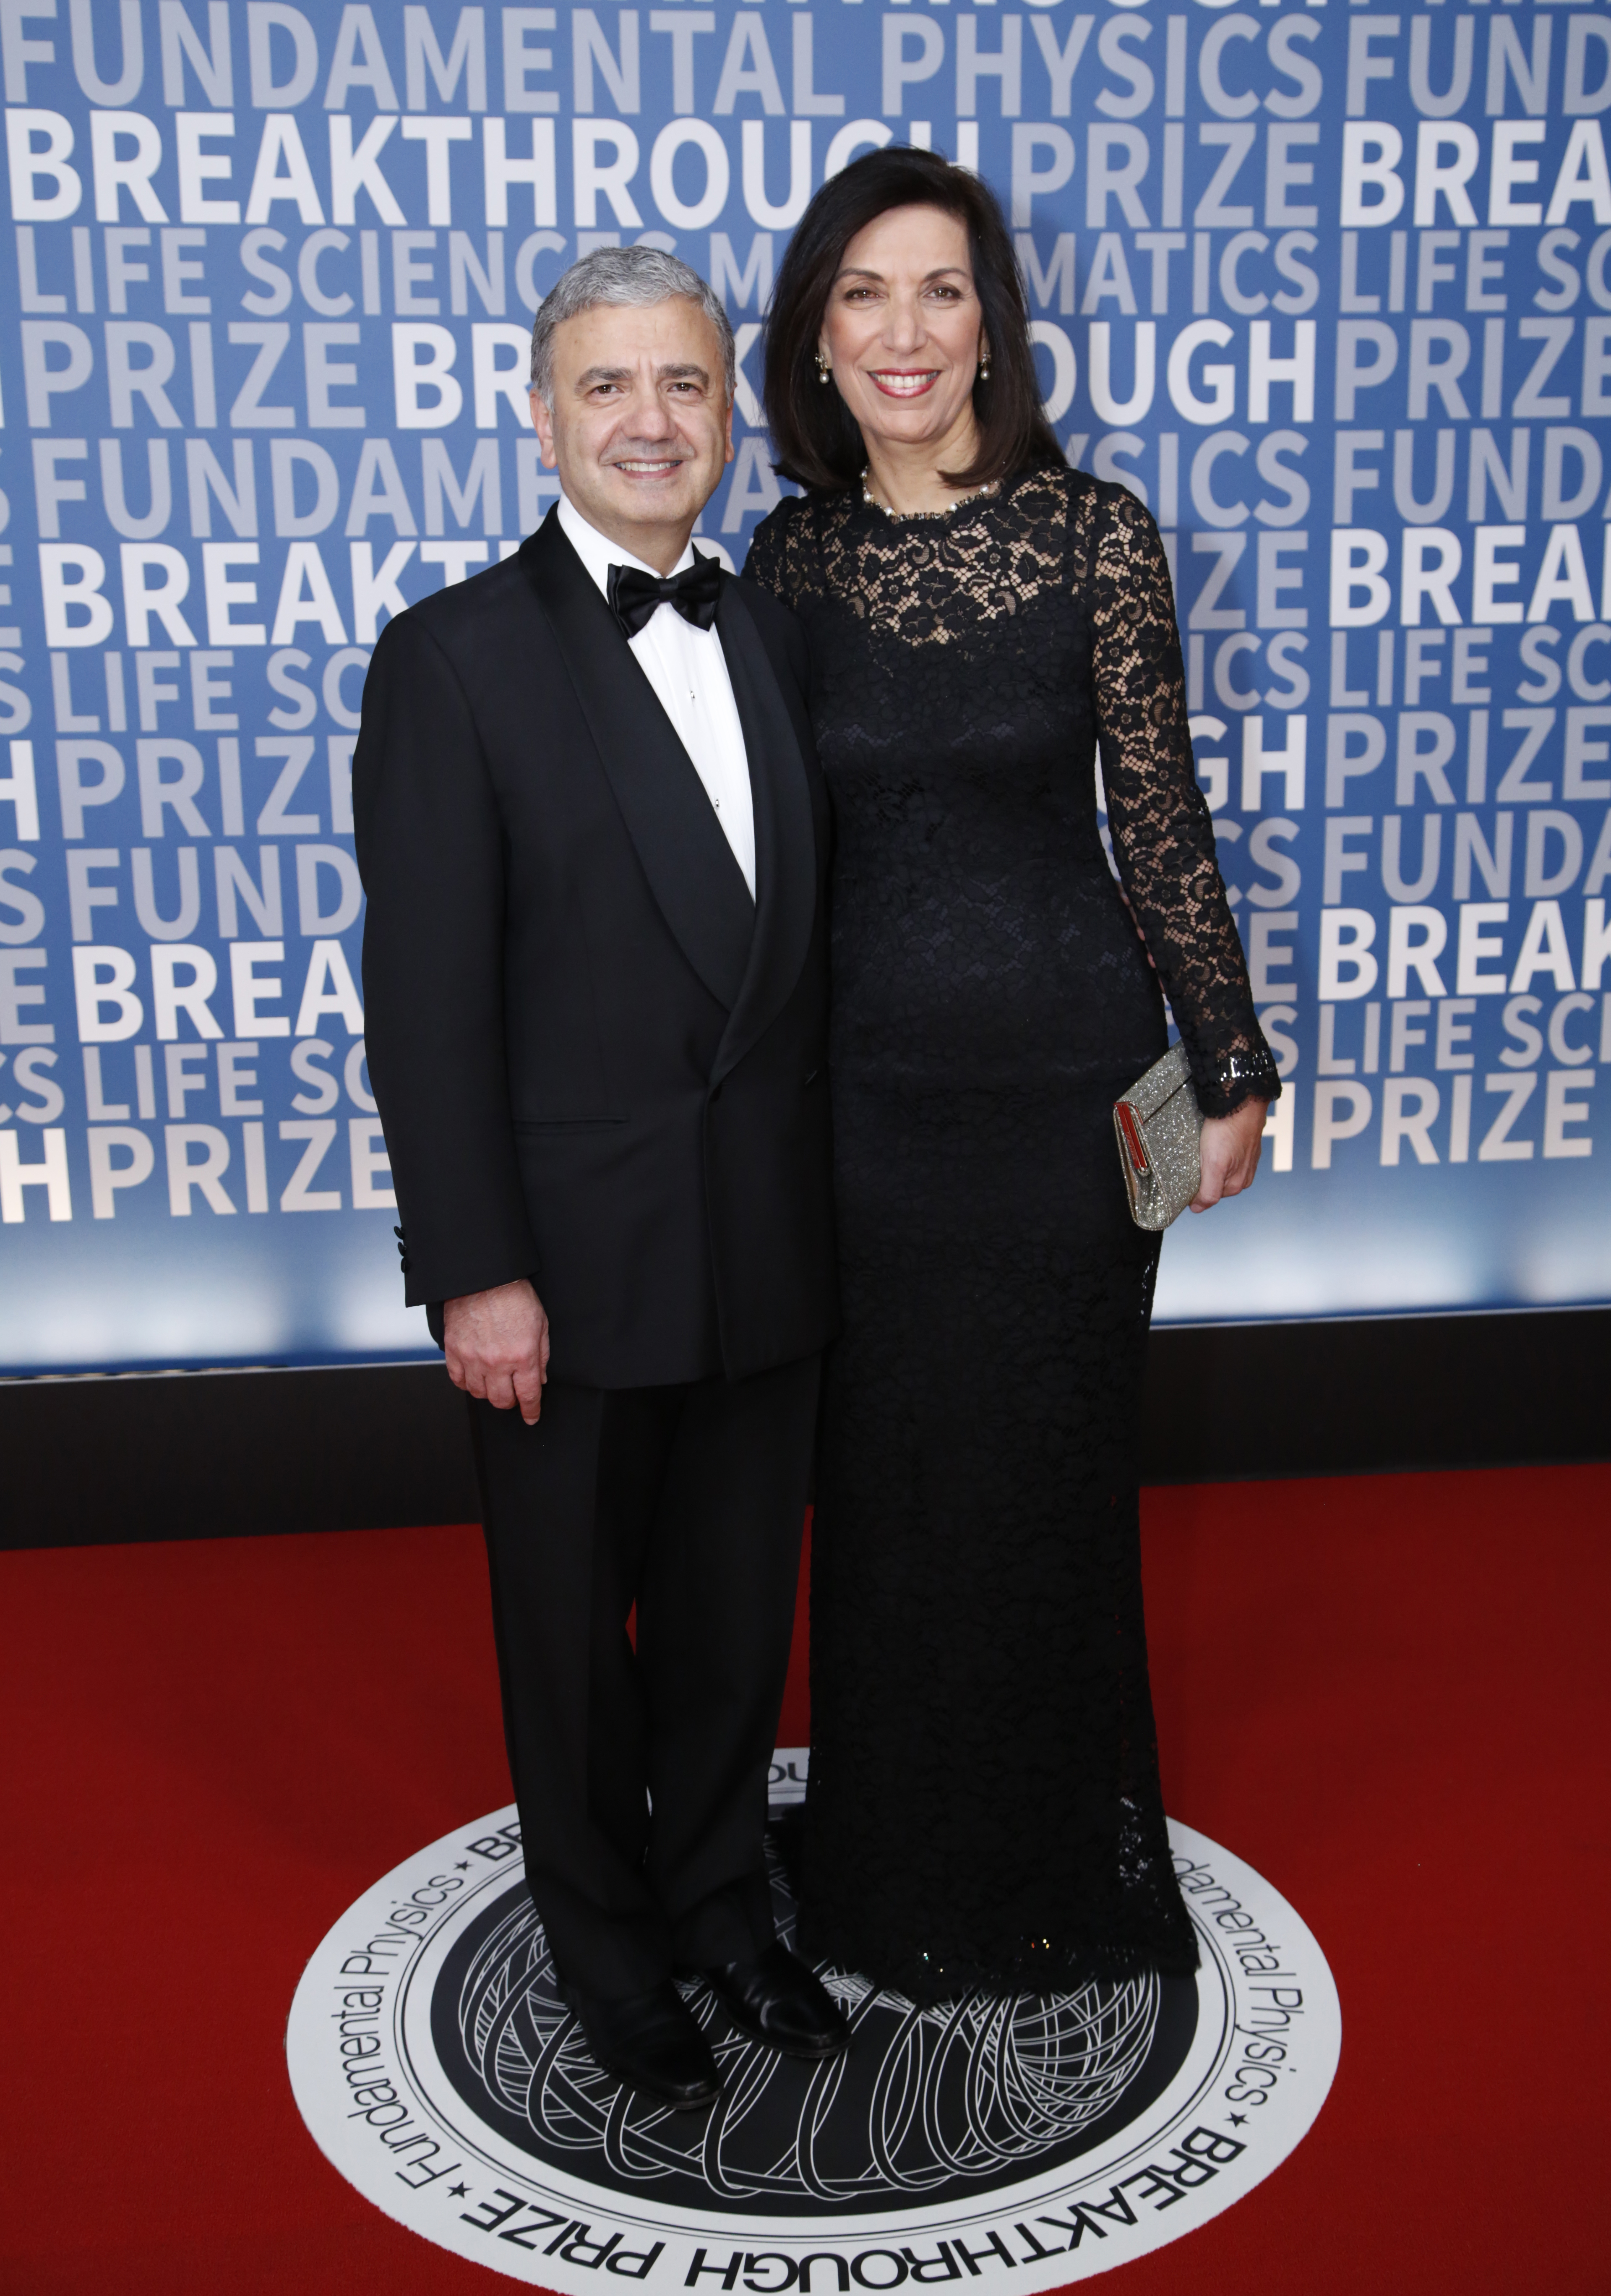 Breakthrough Prize in Life Sciences Laureate Huda Zoghbi (right) and William Zoghbi (left) attend the 2017 Breakthrough Prize at NASA Ames Research Center.